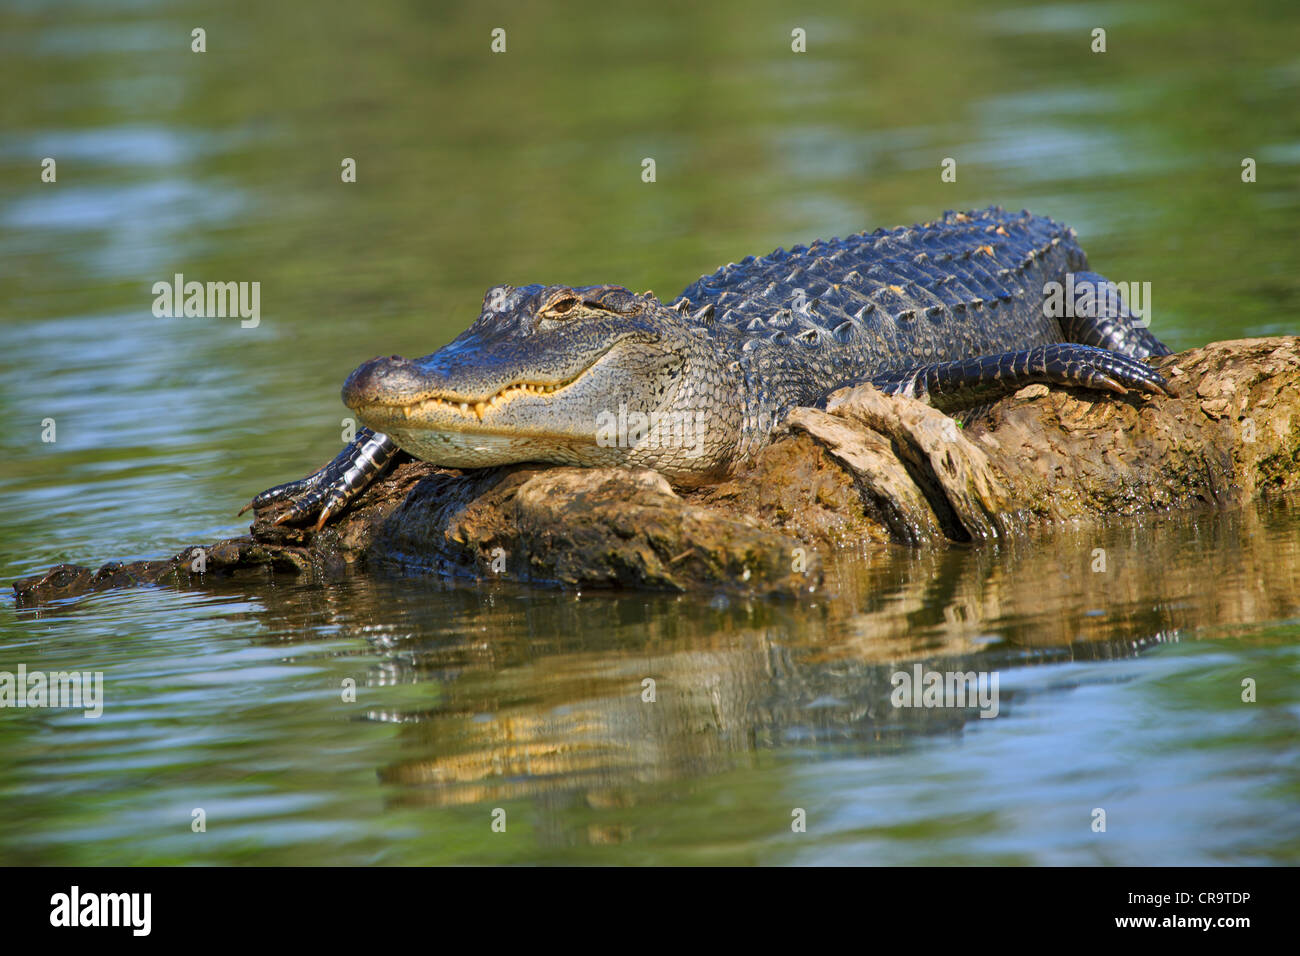 Male alligator, Alligator mississippiensis. Male alligator resting on a floating log in Lake Martin, Louisiana - Stock Image